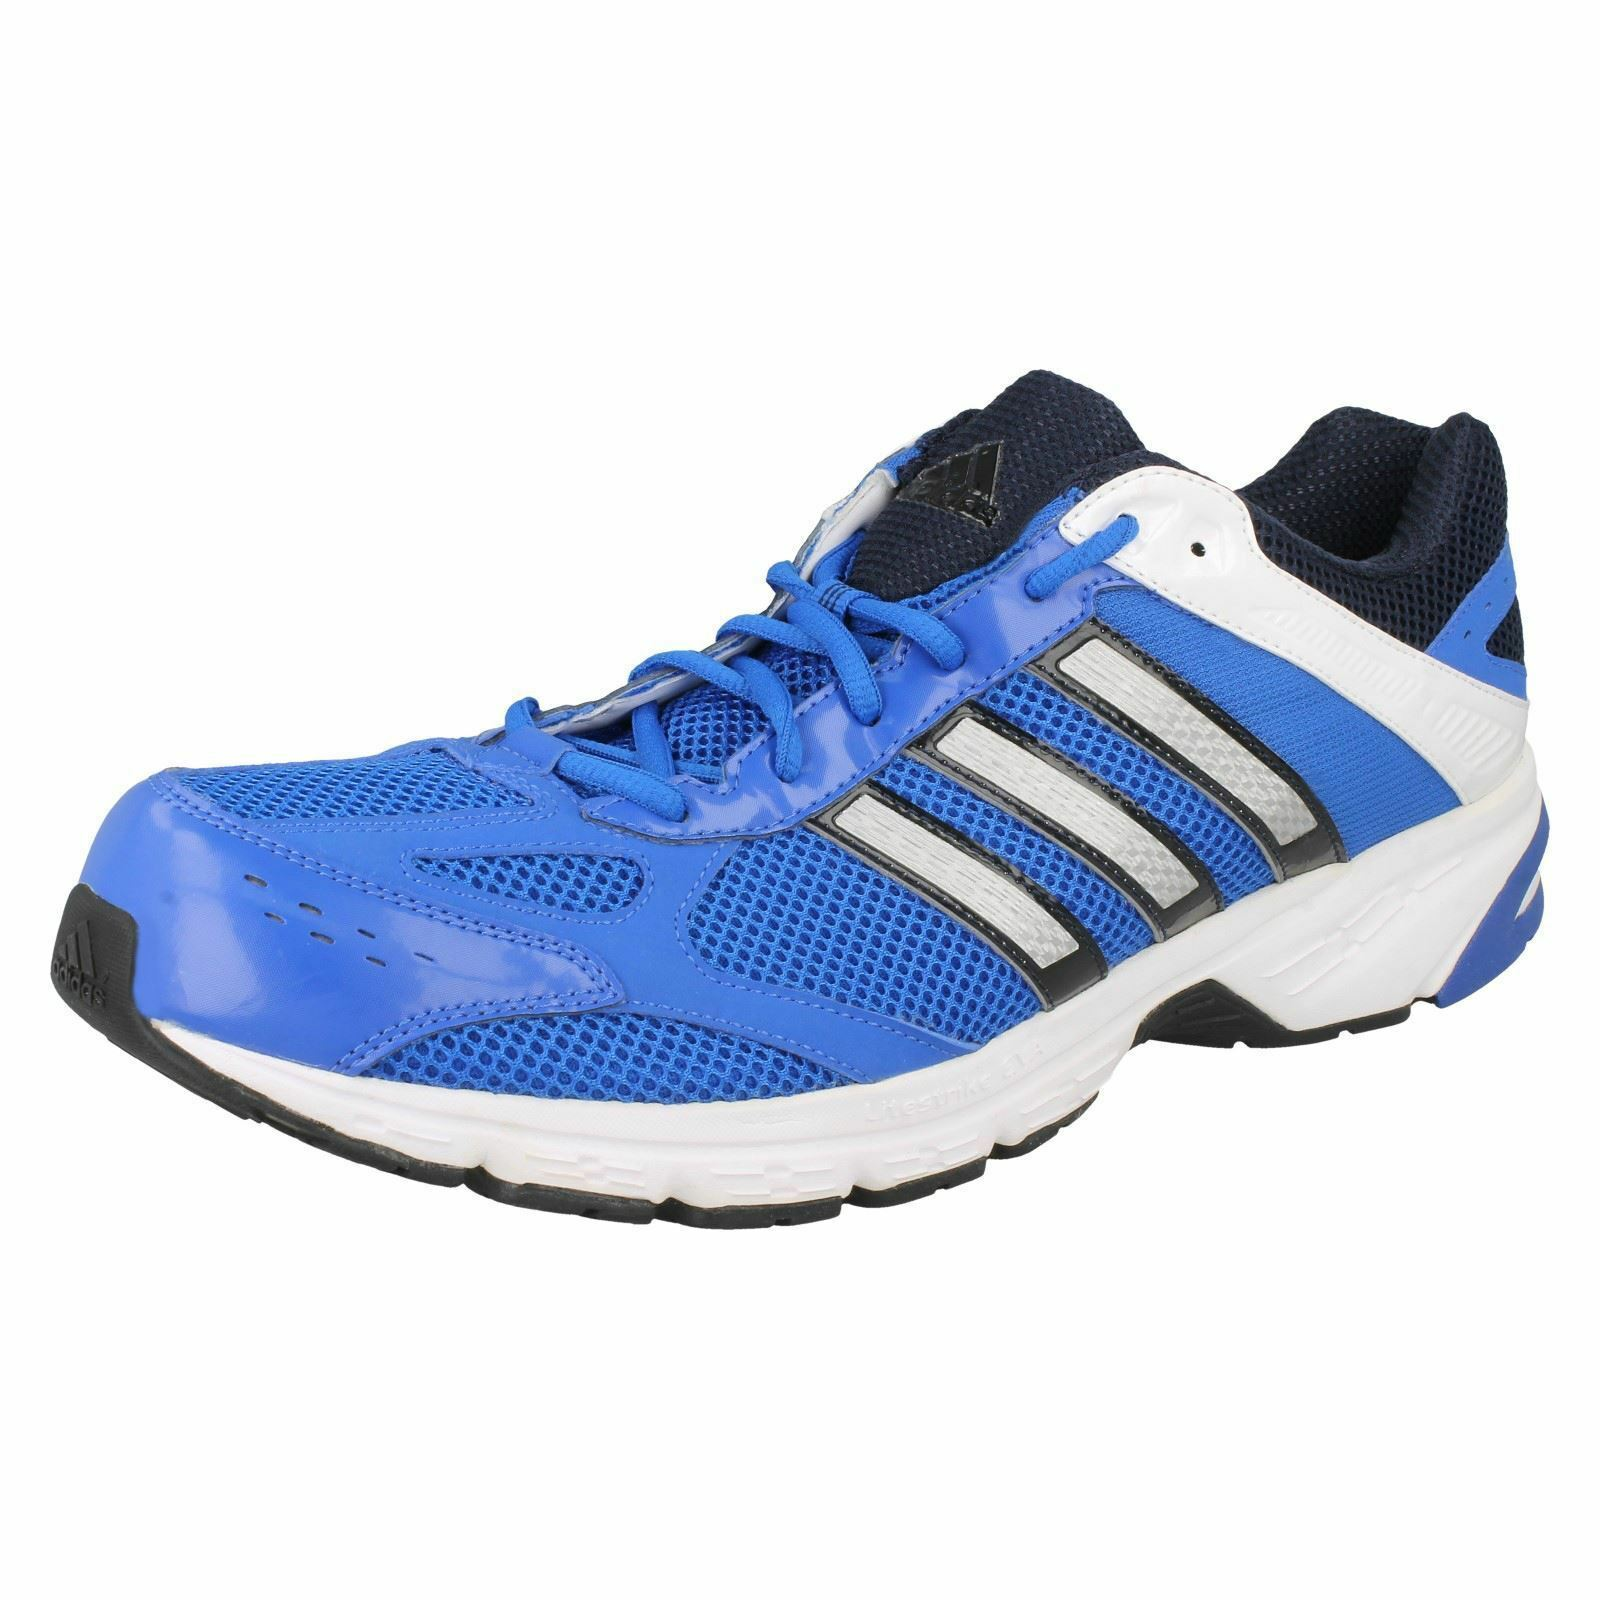 Mens bluee White Black Lace Up Adidas Running Trainers Duramo 4M